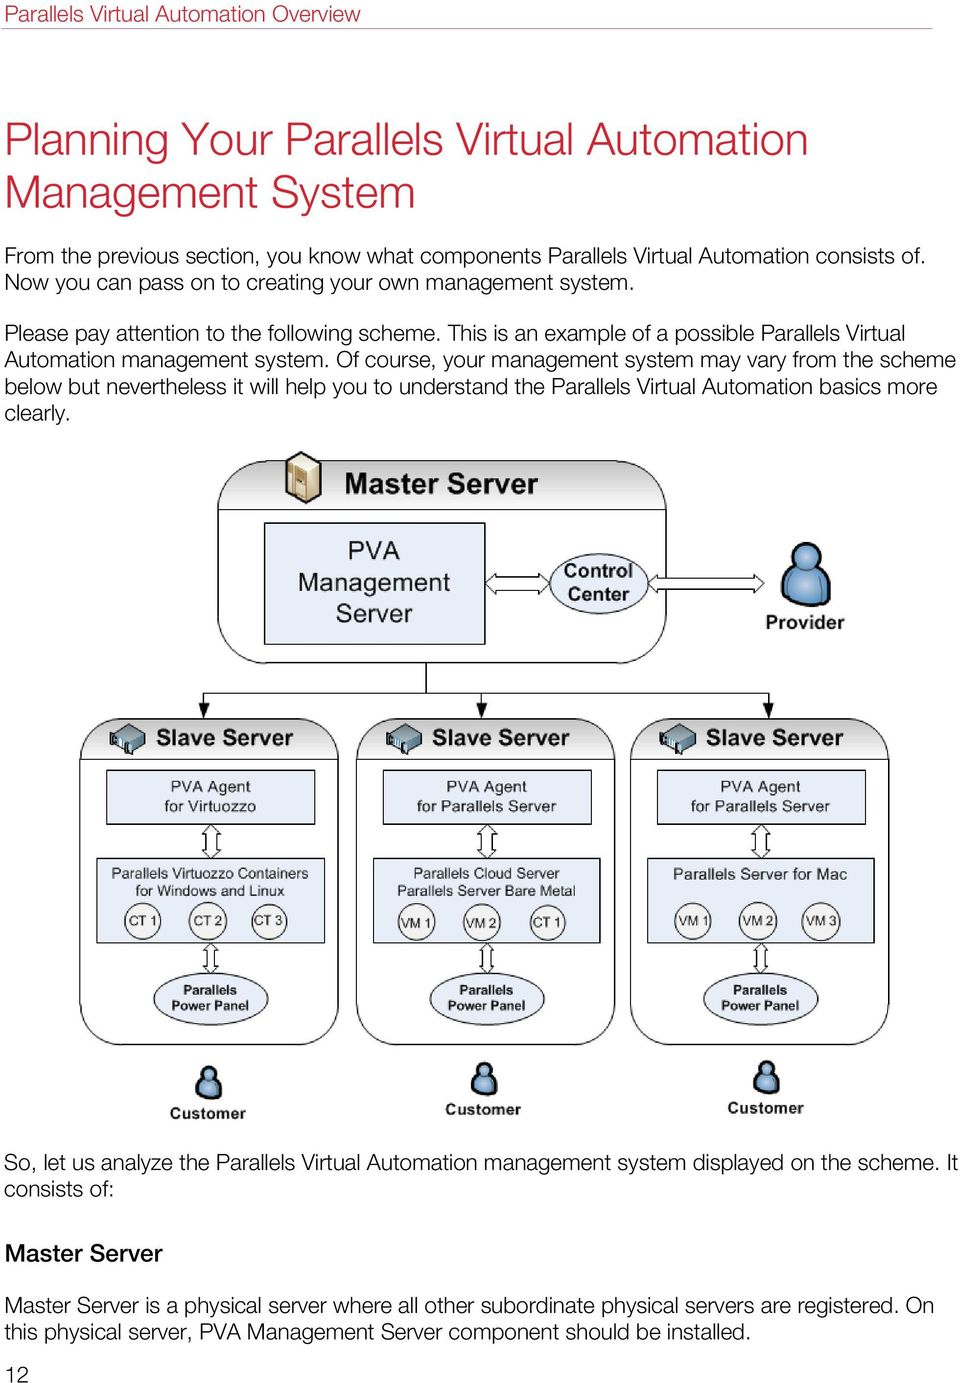 Of course, your management system may vary from the scheme below but nevertheless it will help you to understand the Parallels Virtual Automation basics more clearly.